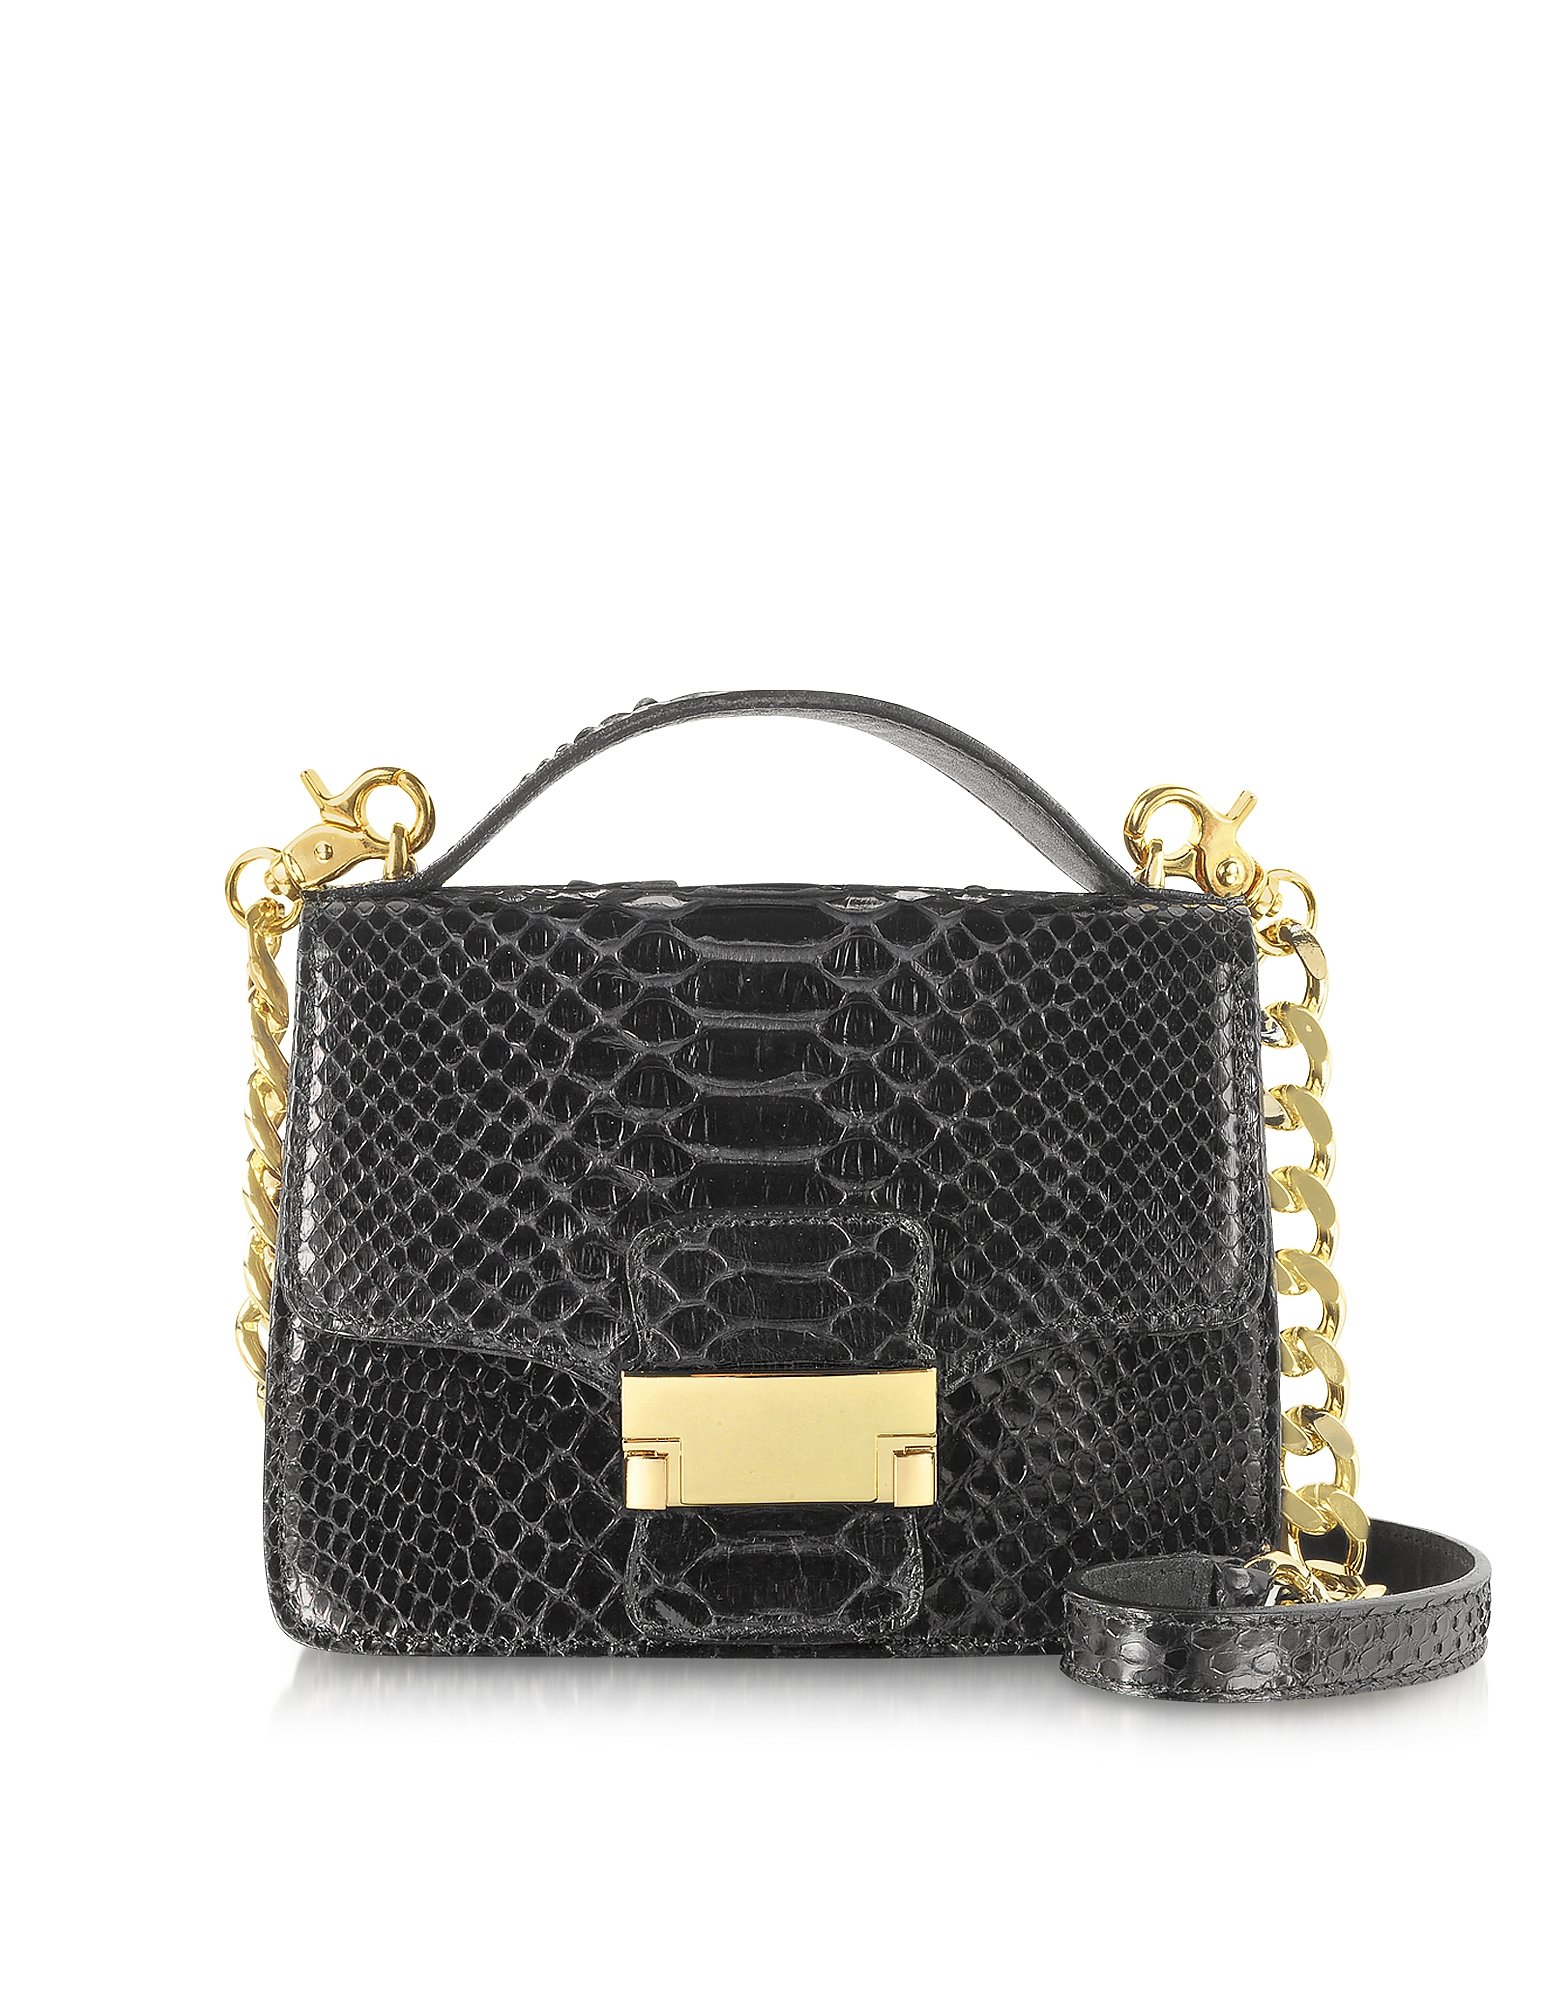 Ghibli Handbags, Black Python Leather Shoulder Bag